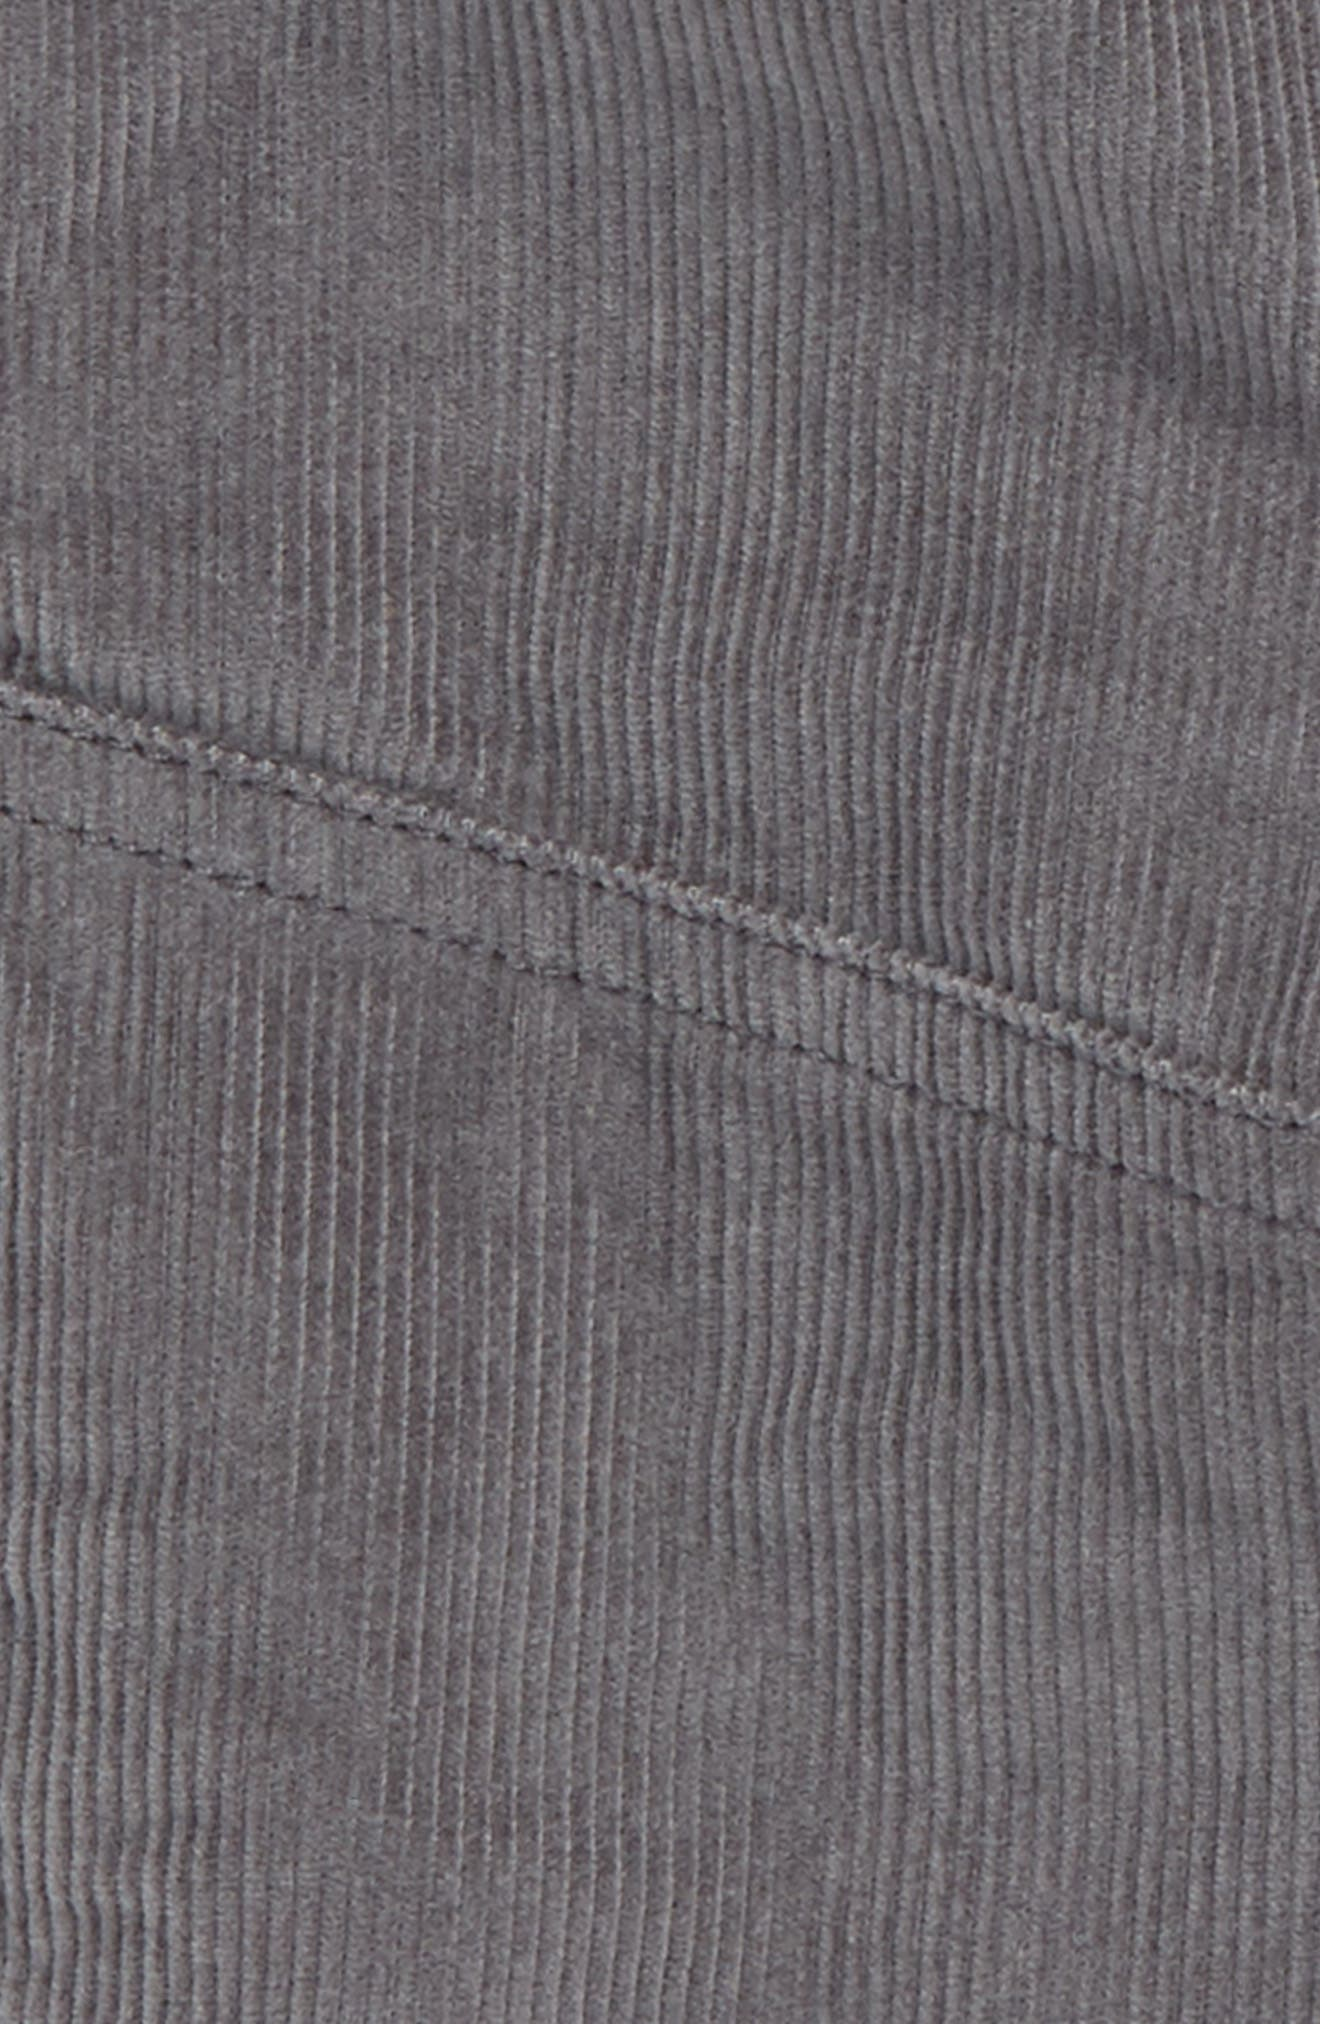 Lined Corduroy Jogger Pants,                             Alternate thumbnail 2, color,                             SHARK FIN